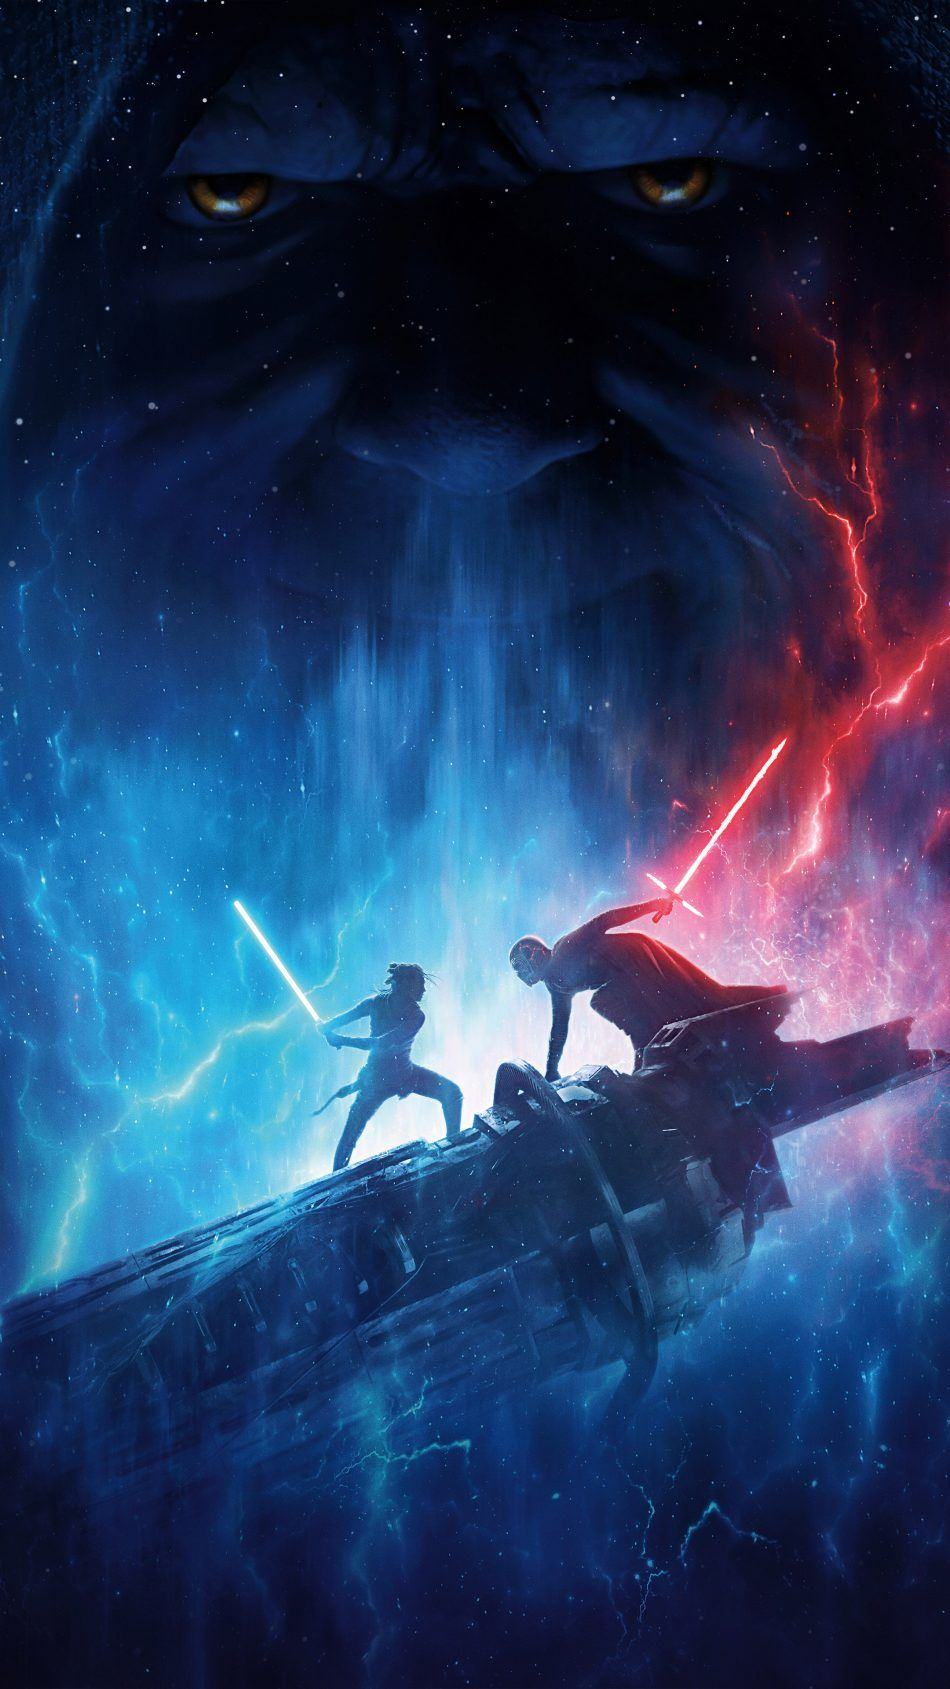 Star Wars The Rise Of Skywalker 2019 4k Ultra Hd Mobile Wallpaper Star Wars Wallpaper Iphone Star Wars Poster Star Wars Wallpaper